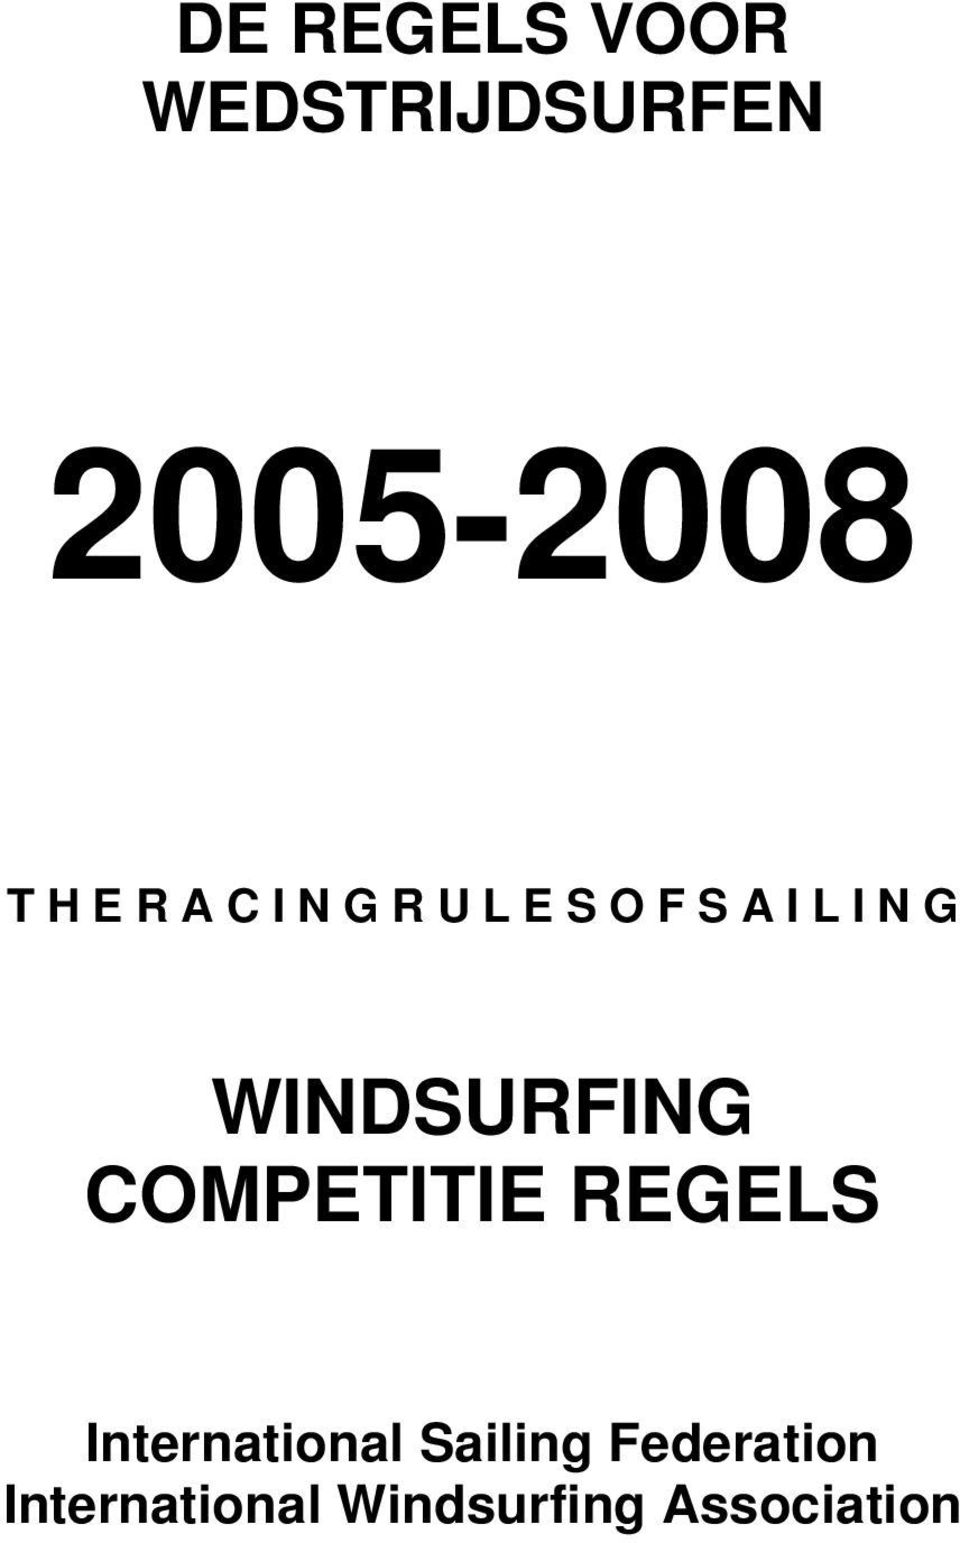 WINDSURFING COMPETITIE REGELS International